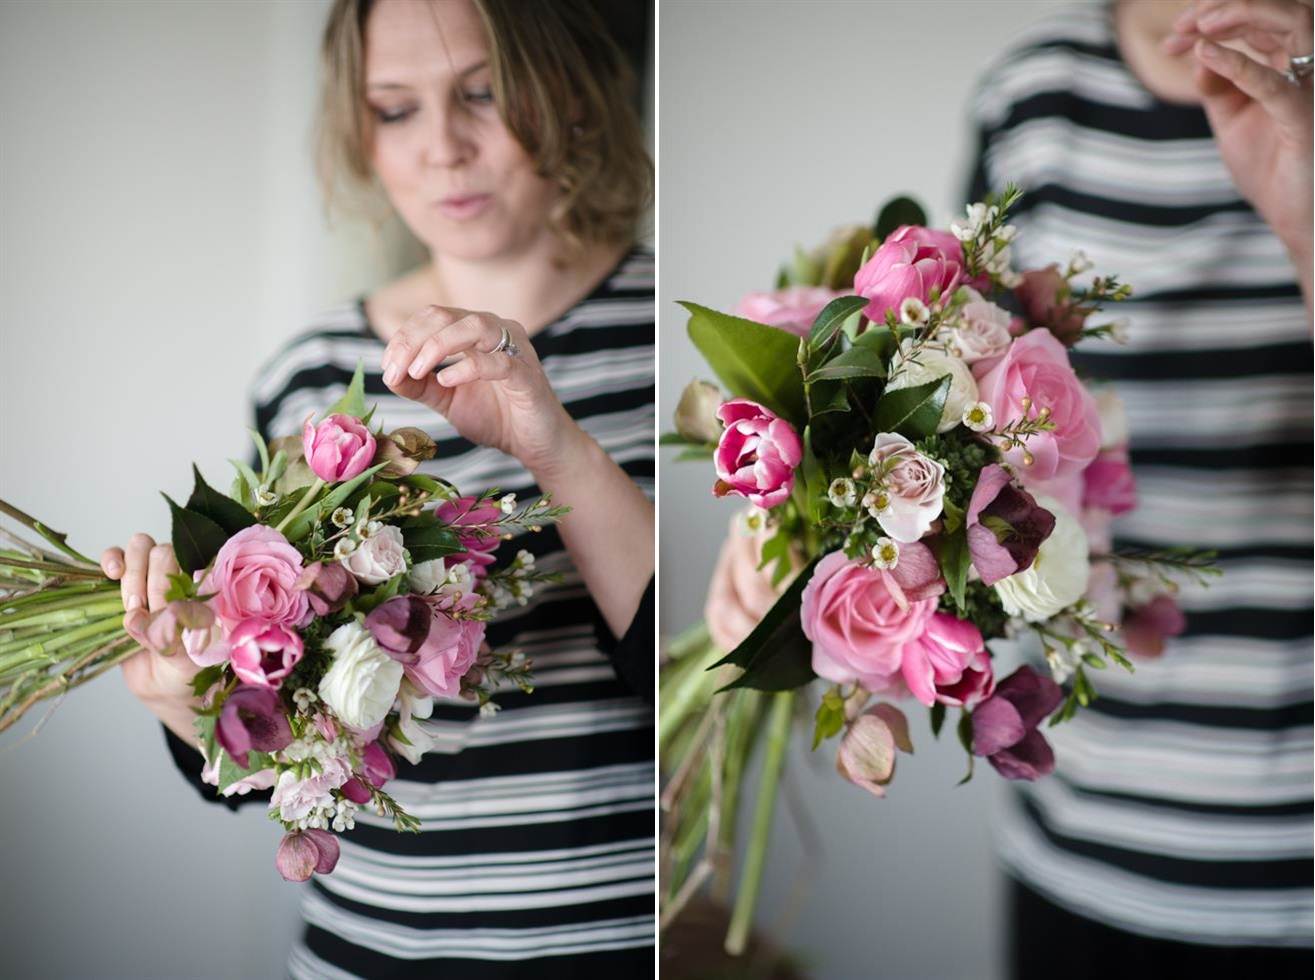 Bridal Bouquet Recipe ~ A Pretty Posy of Pinks